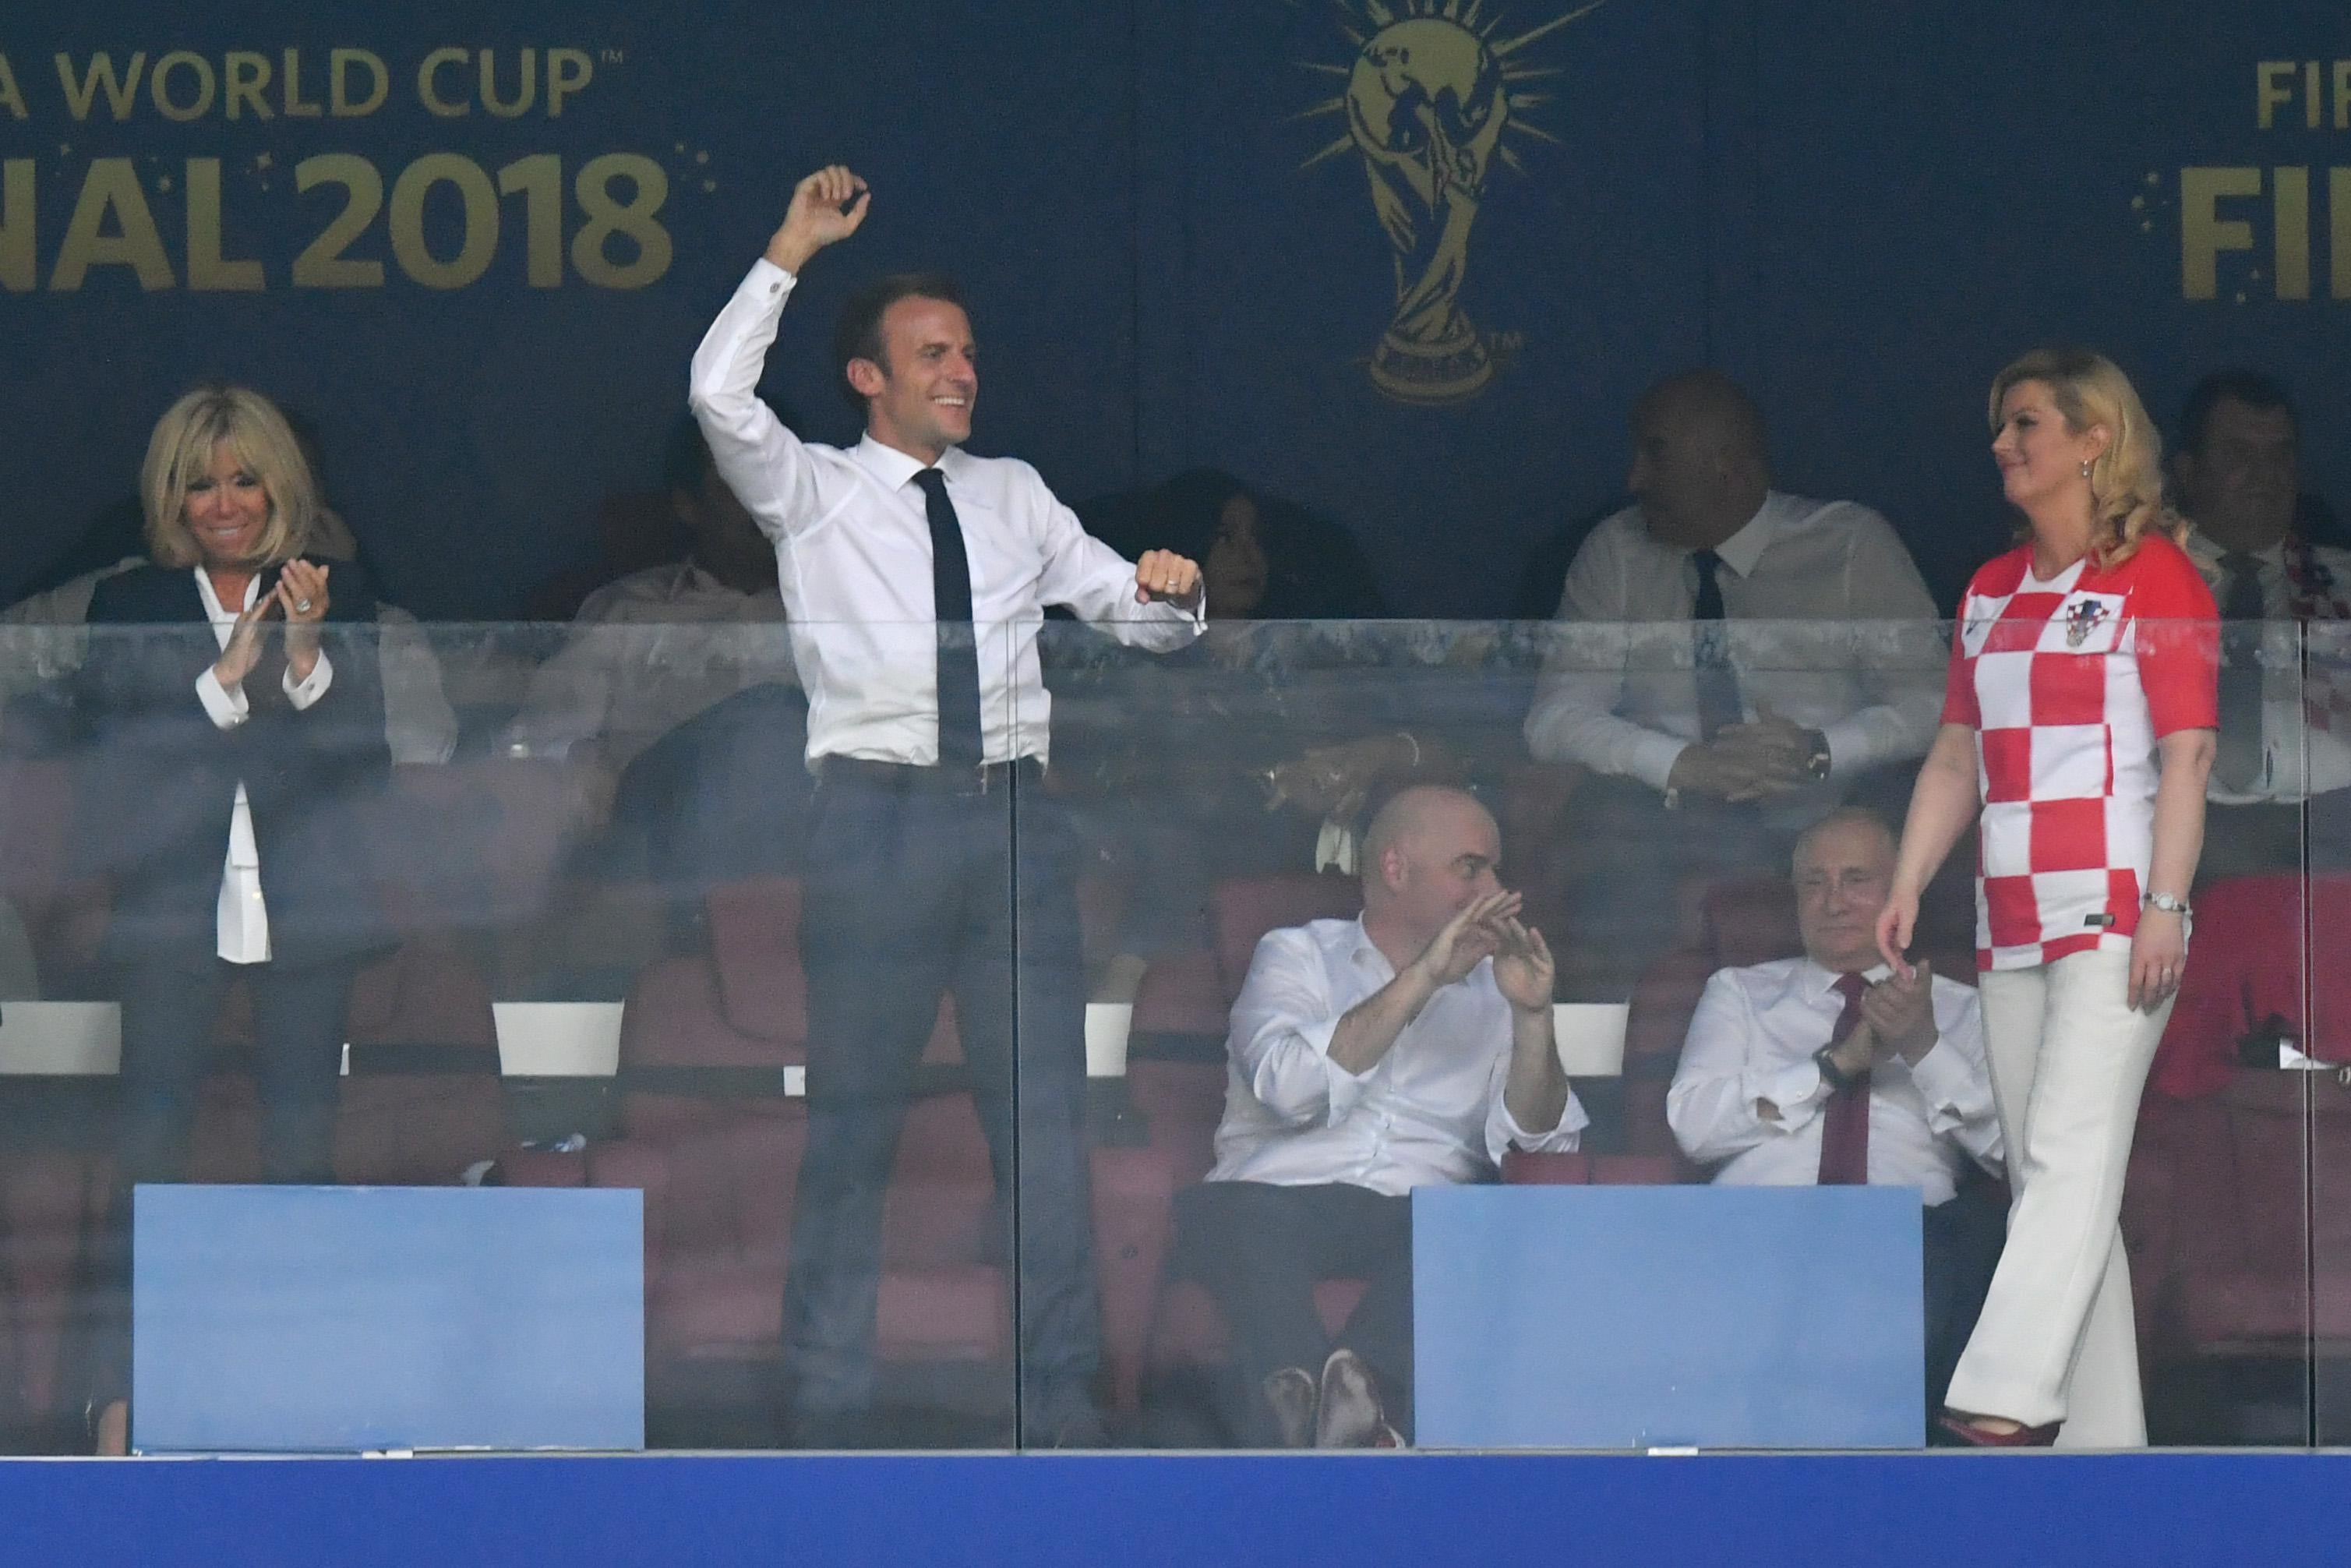 French President Emmanuel Macron celebrates after his team's fourth goal during the 2018 FIFA World Cup Final between France and Croatia at Luzhniki Stadium on July 15, 2018 in Moscow, Russia.